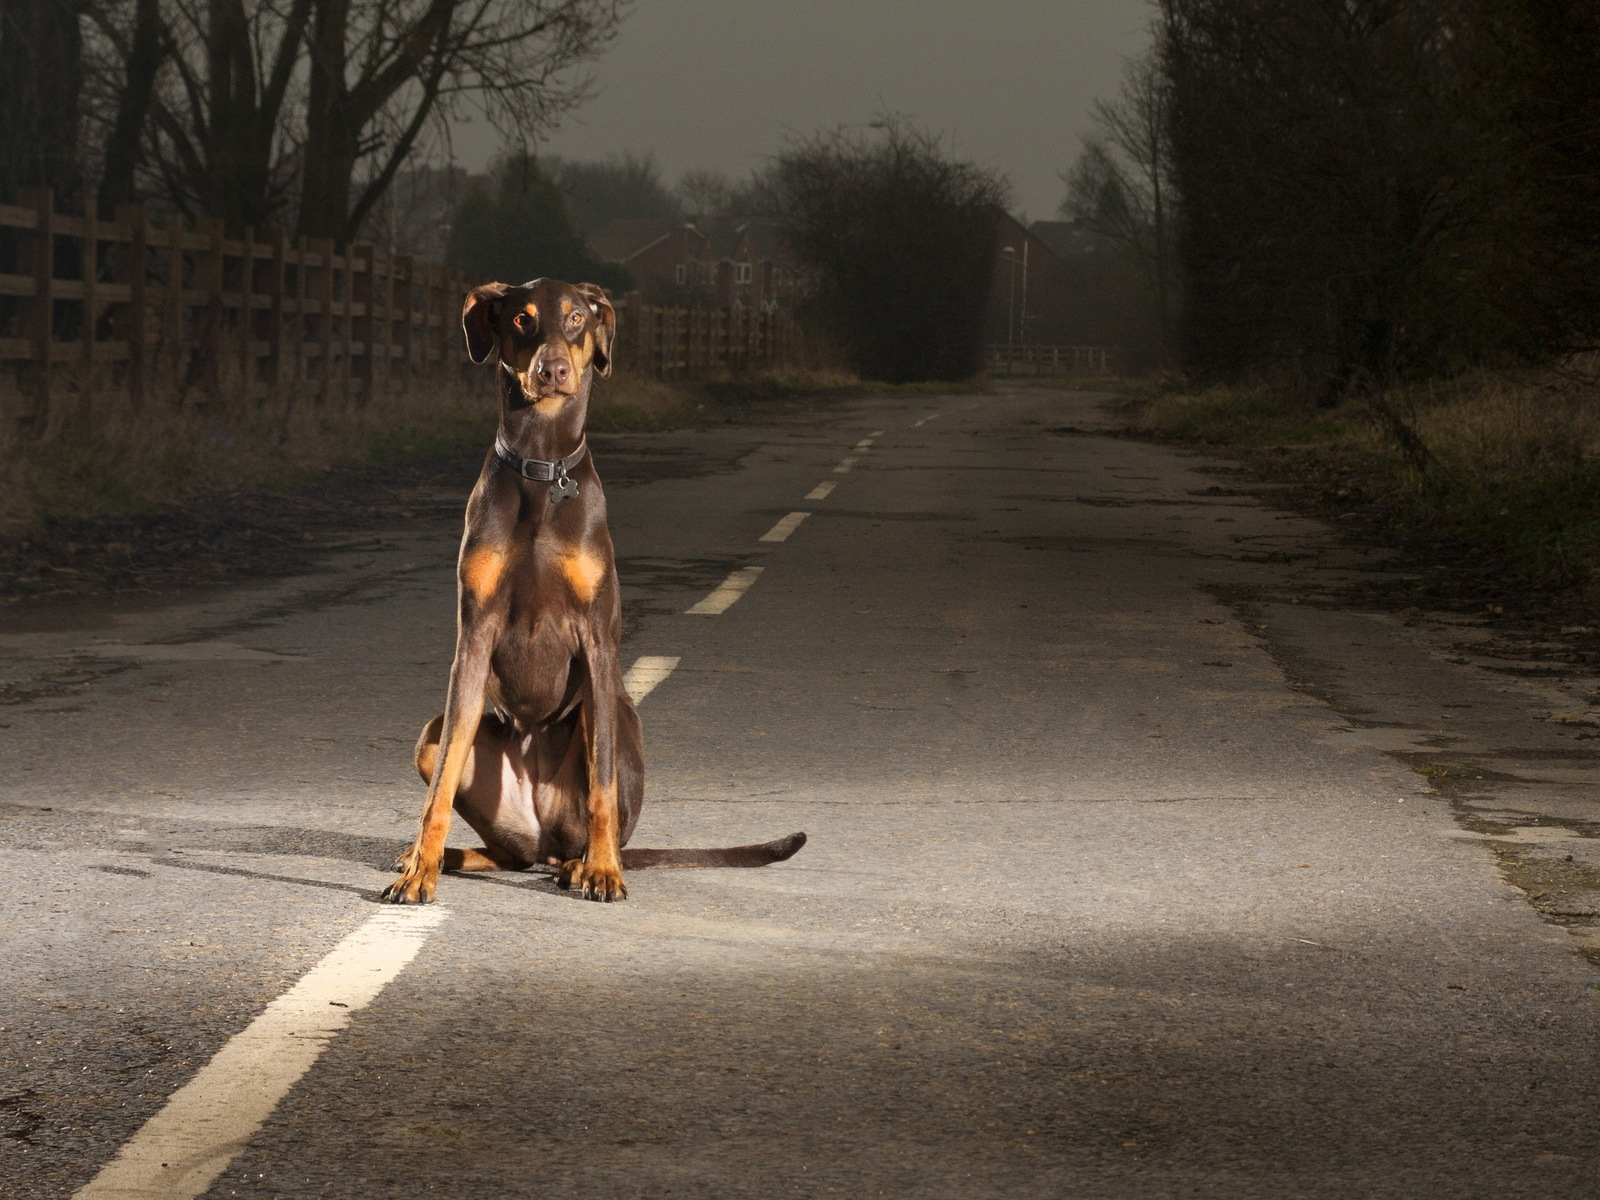 Dog on road